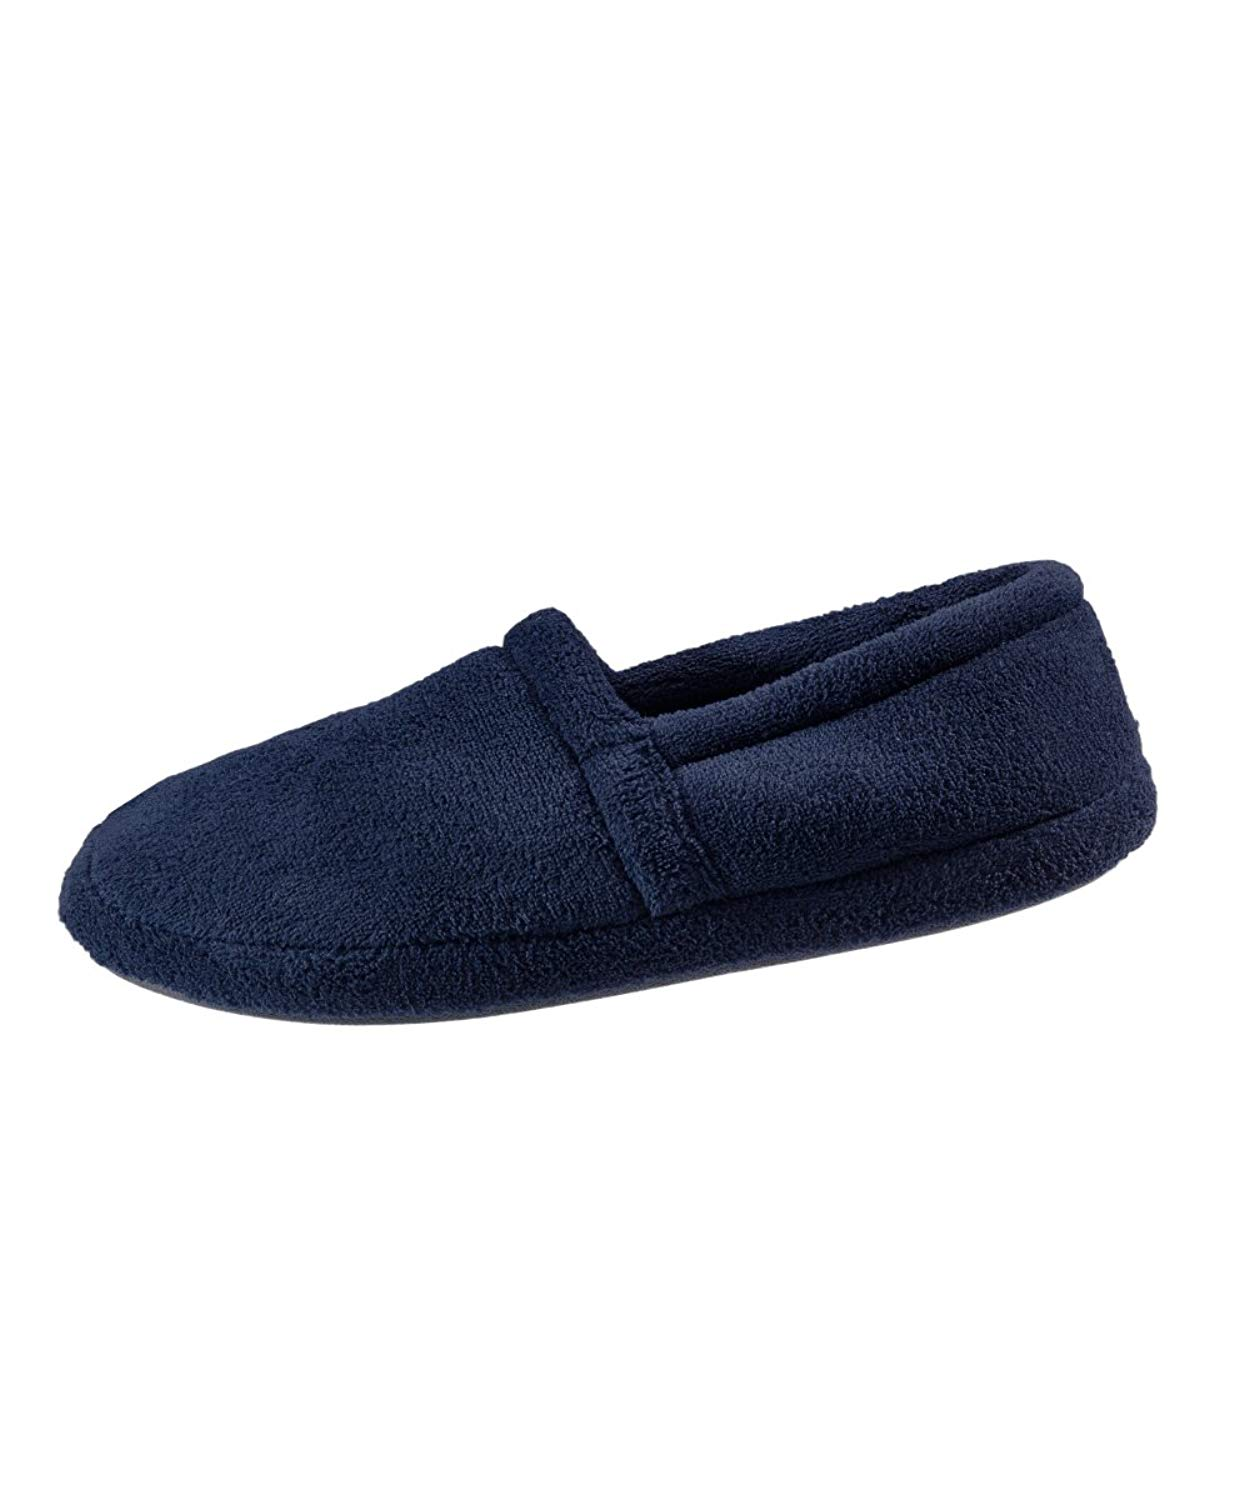 517ac8bd3cba Get Quotations · Most Comfortable Mens Slippers - Best Mens Slippers With  Memory Foam Comfort Slippers - Wide Mens